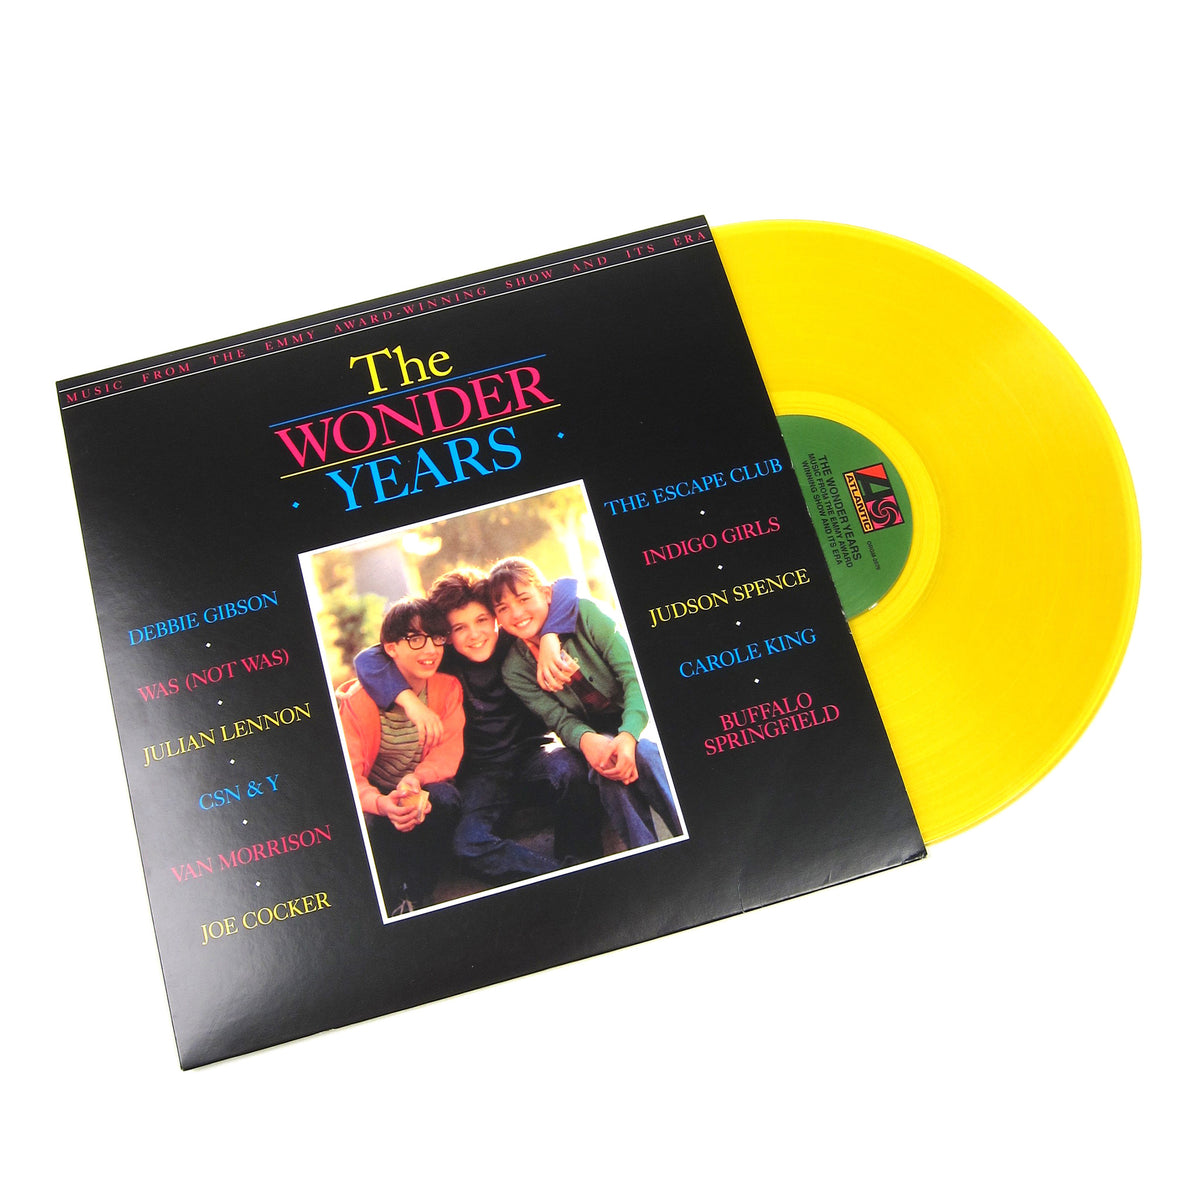 The Wonder Years: Music From The Emmy Award-Winning Show & Its Era (Colored Vinyl) Vinyl LP (Record Store Day)